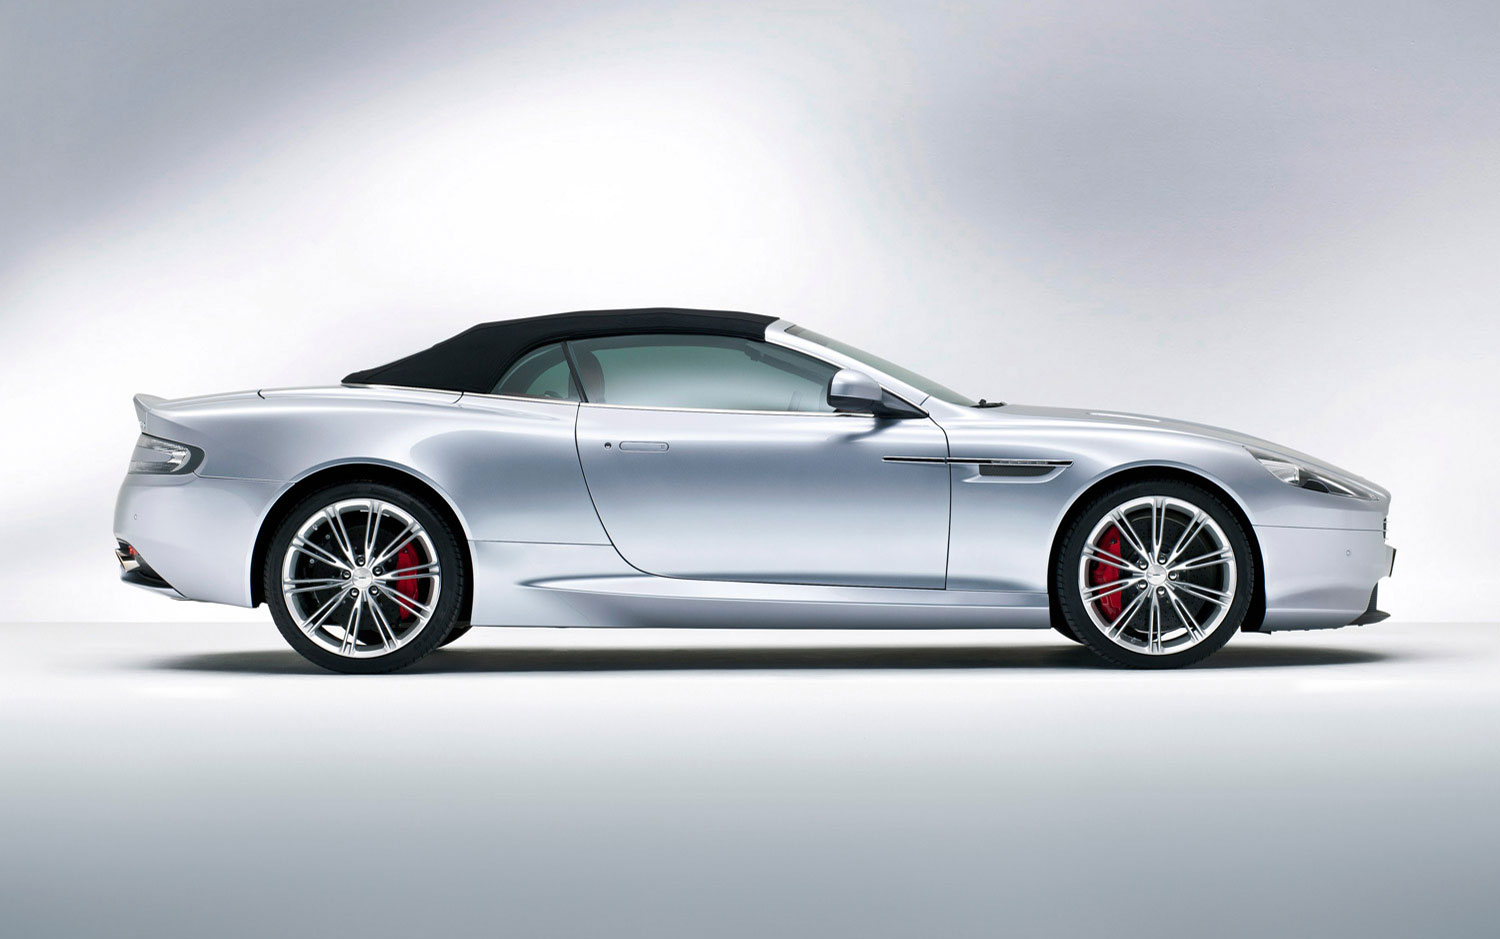 cars model 2013 2014 2013 aston martin db9. Cars Review. Best American Auto & Cars Review